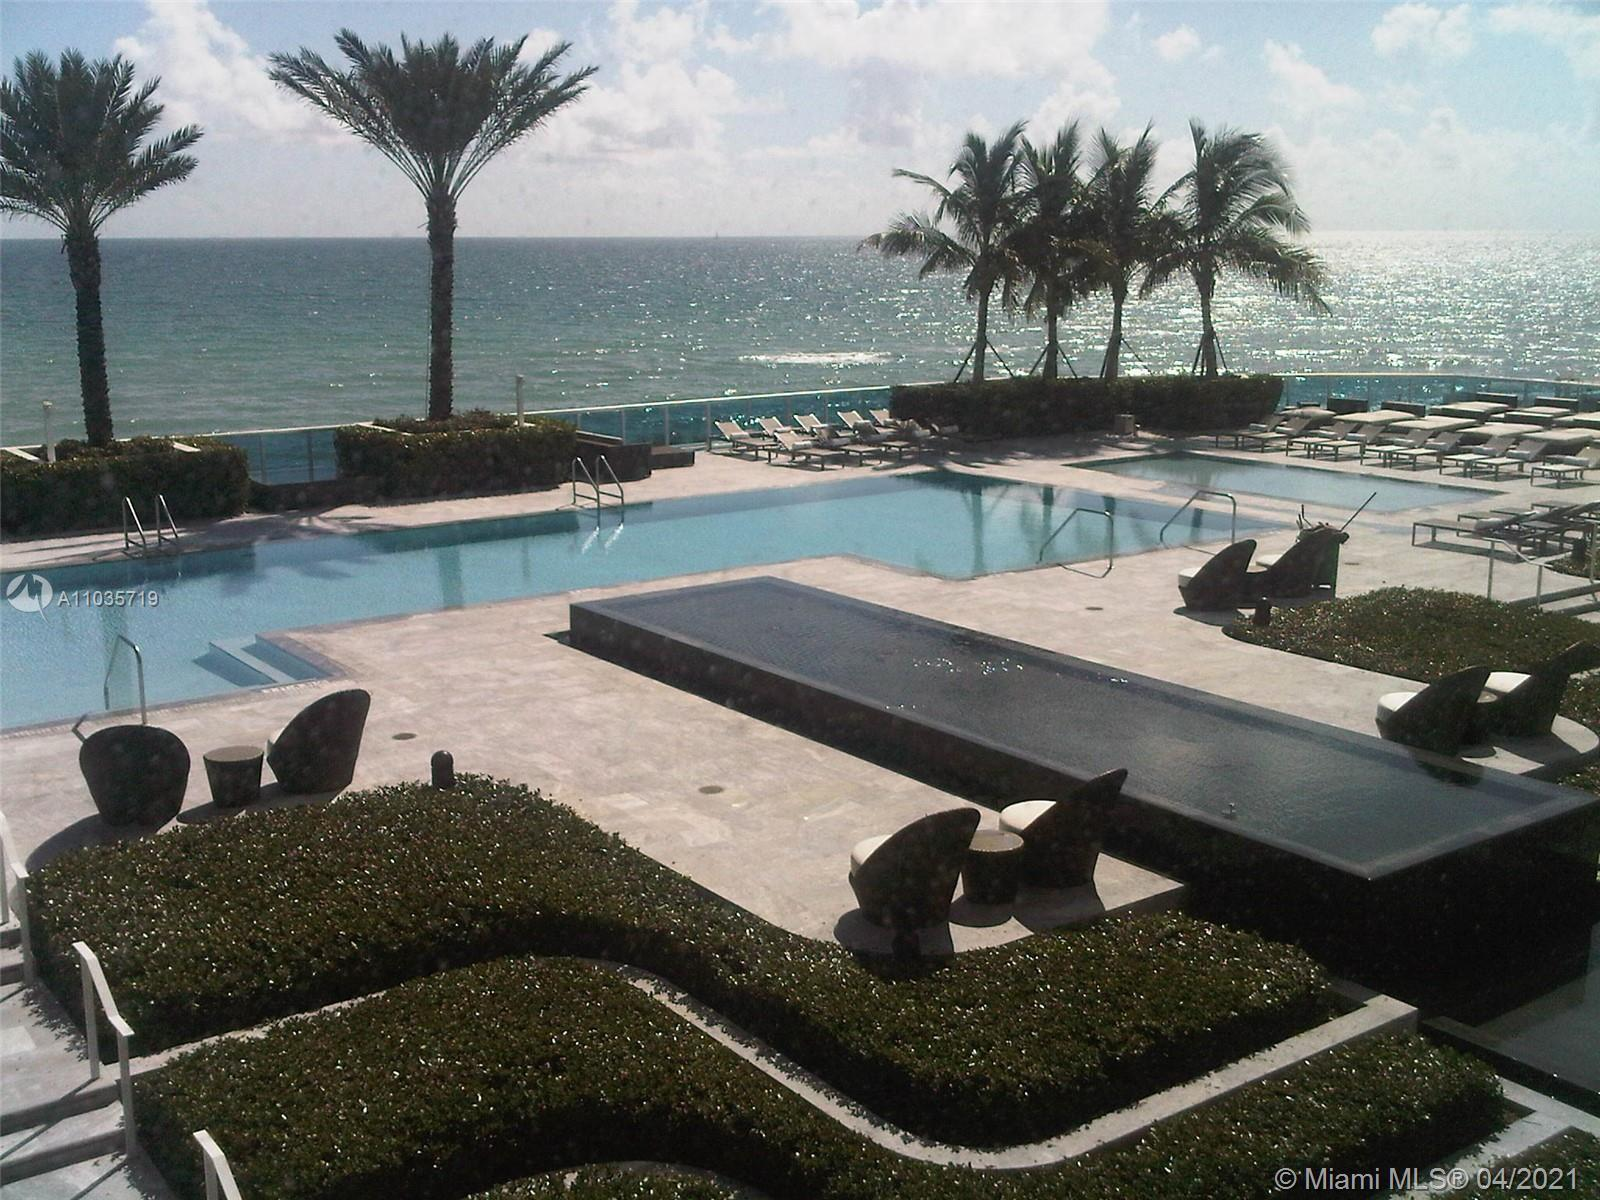 CABANA INCLUDED! with this furnished Beachfront unit year 2010. 4 story glass tower overlooking the